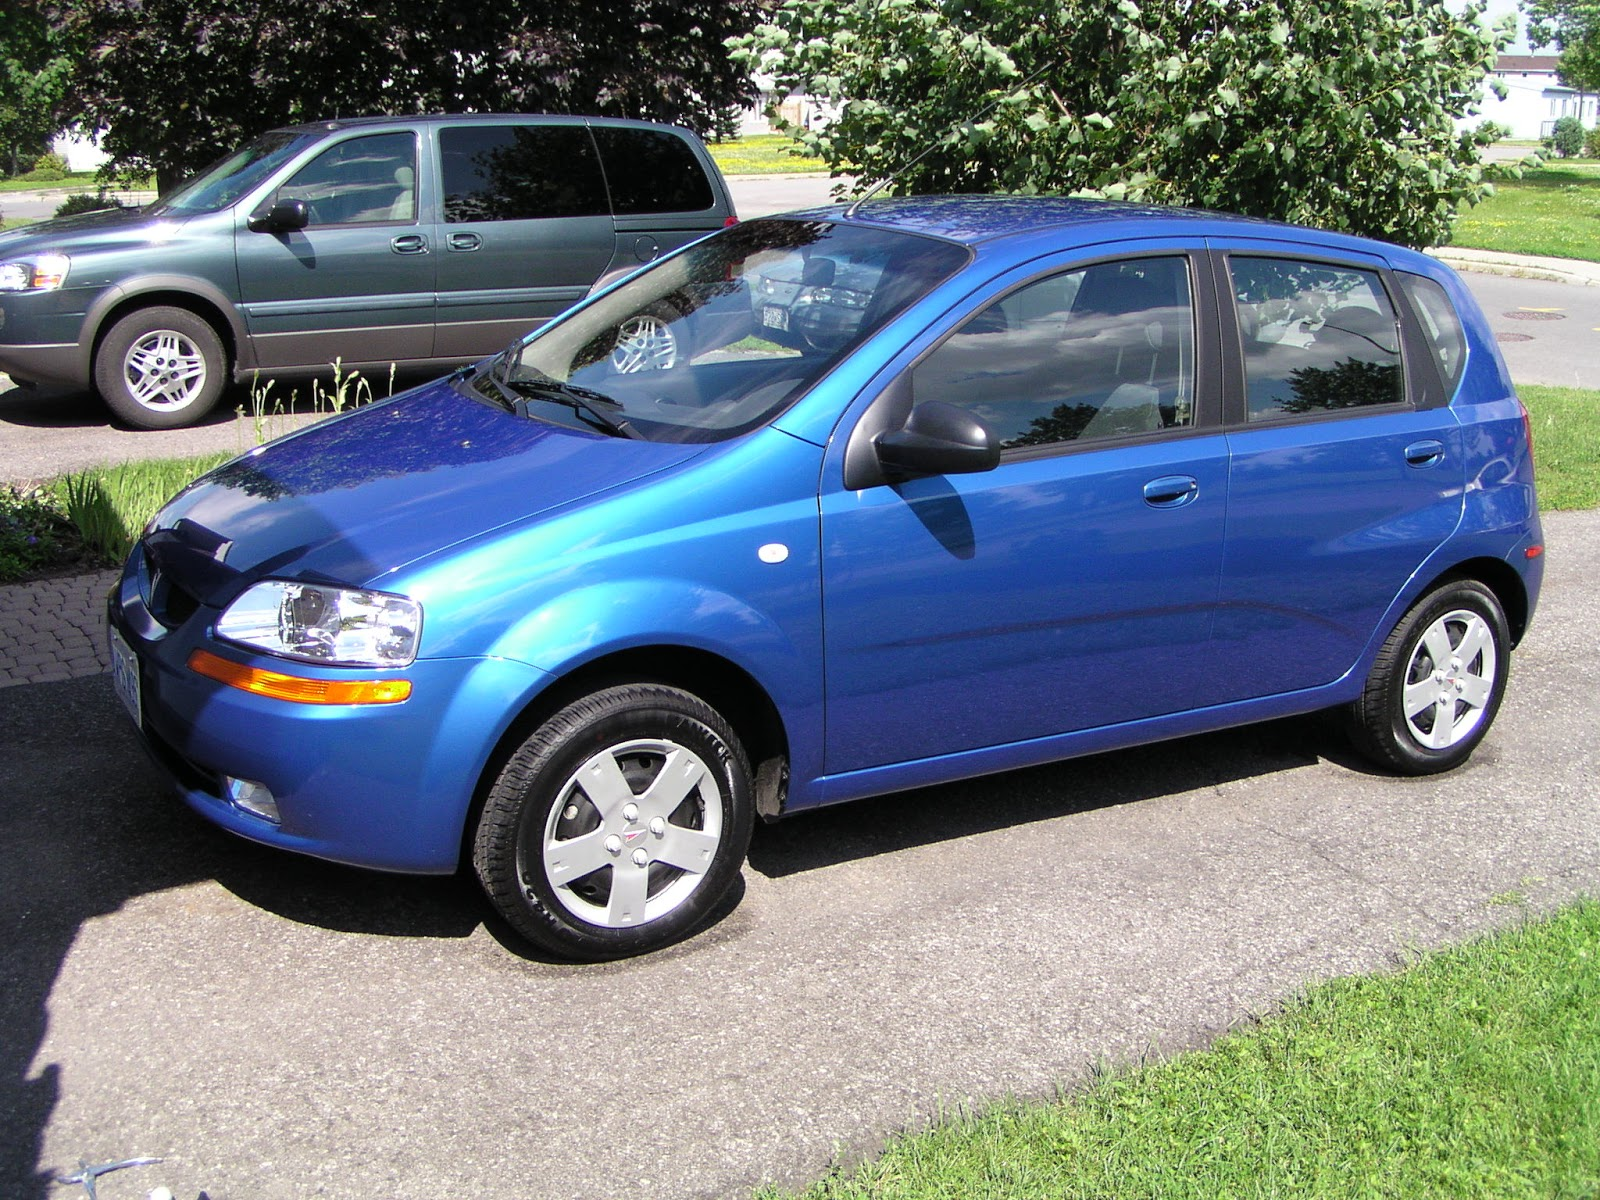 The Little Blue Car Needs A Name